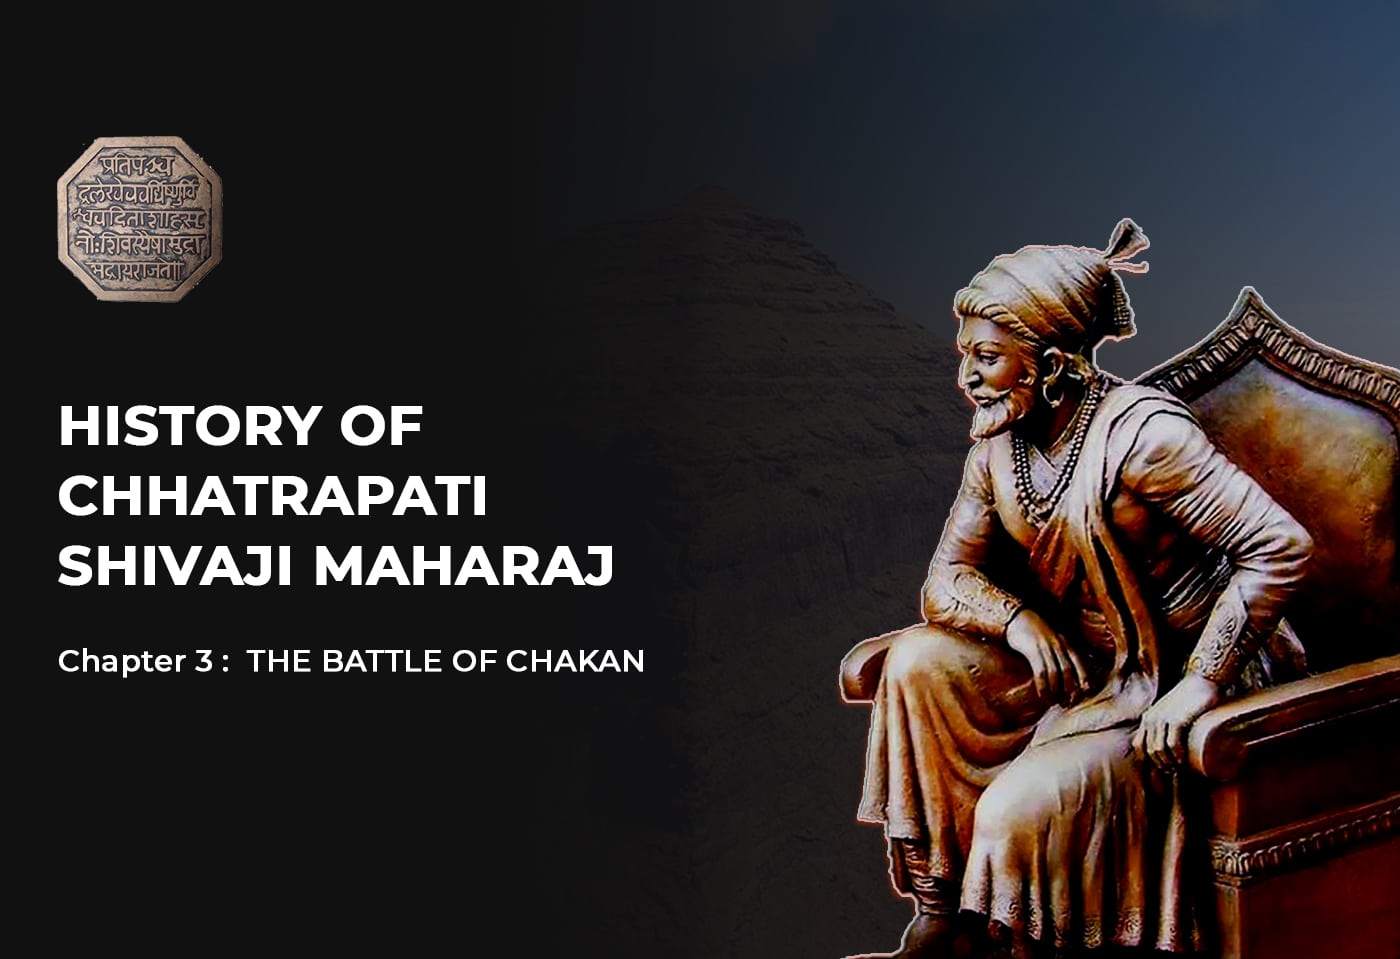 HISTORY OF CHHATRAPATI SHIVAJI MAHARAJ - Chapter 3- THE BATTLE OF CHAKAN